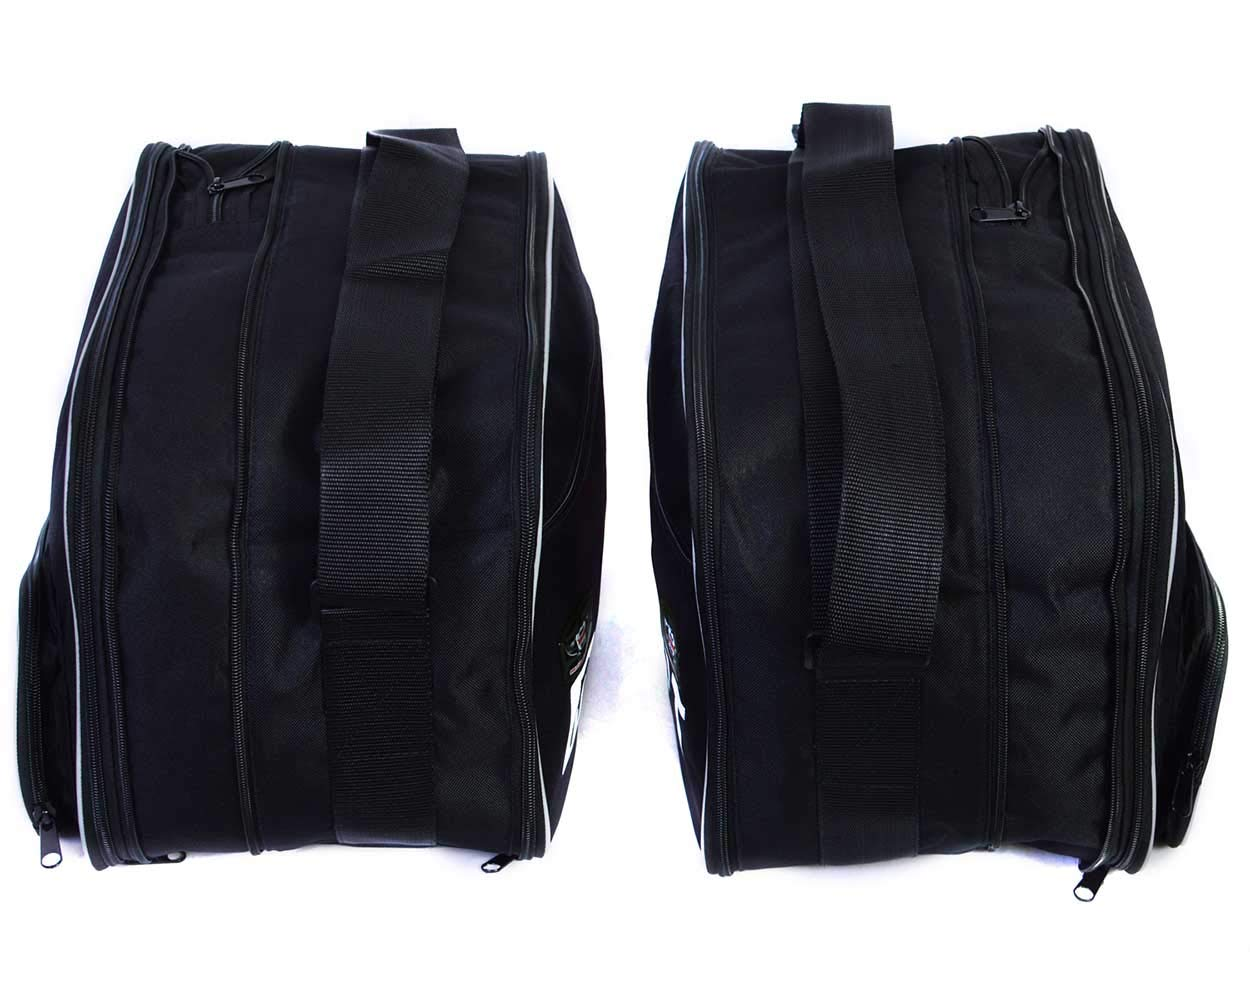 Bolsas para Bolsas Laterales BMW R1250RT Bolsas Impresas par Negro GREAT BIKERS GEAR